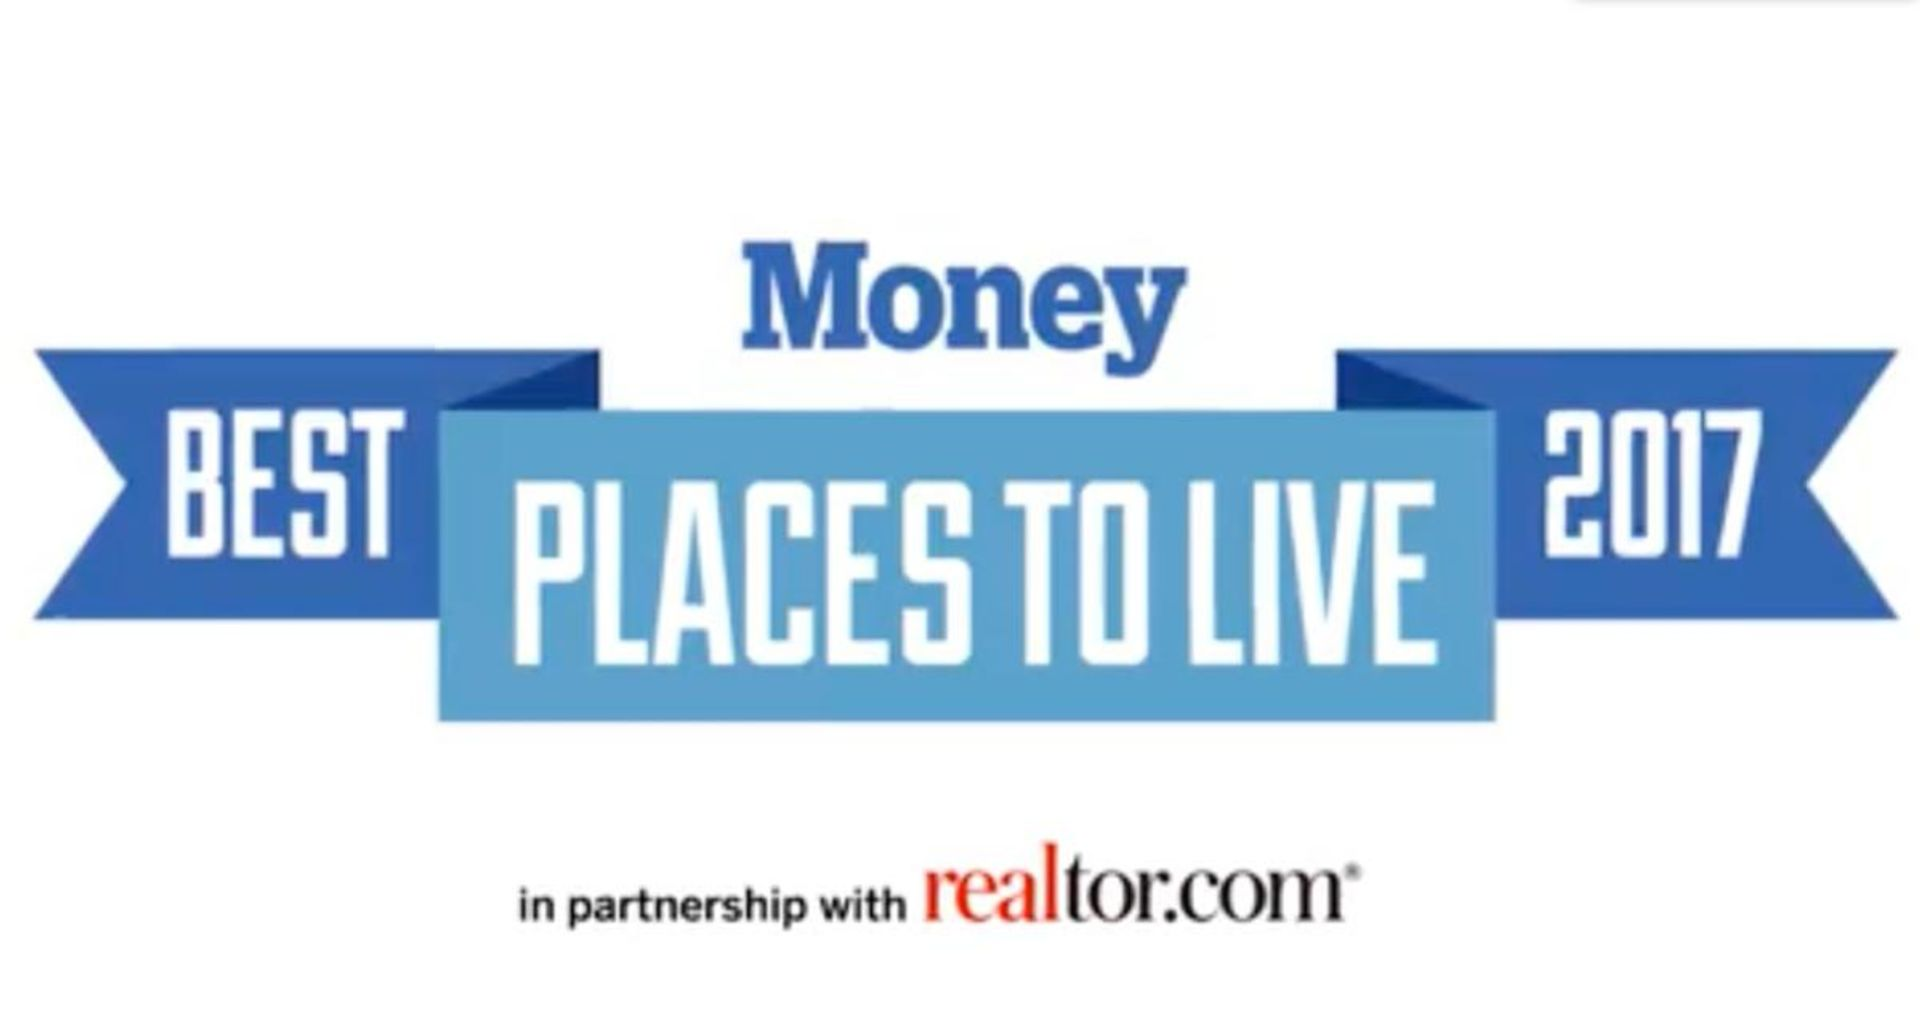 4 Utah cities made Money's top 'best places to live' list